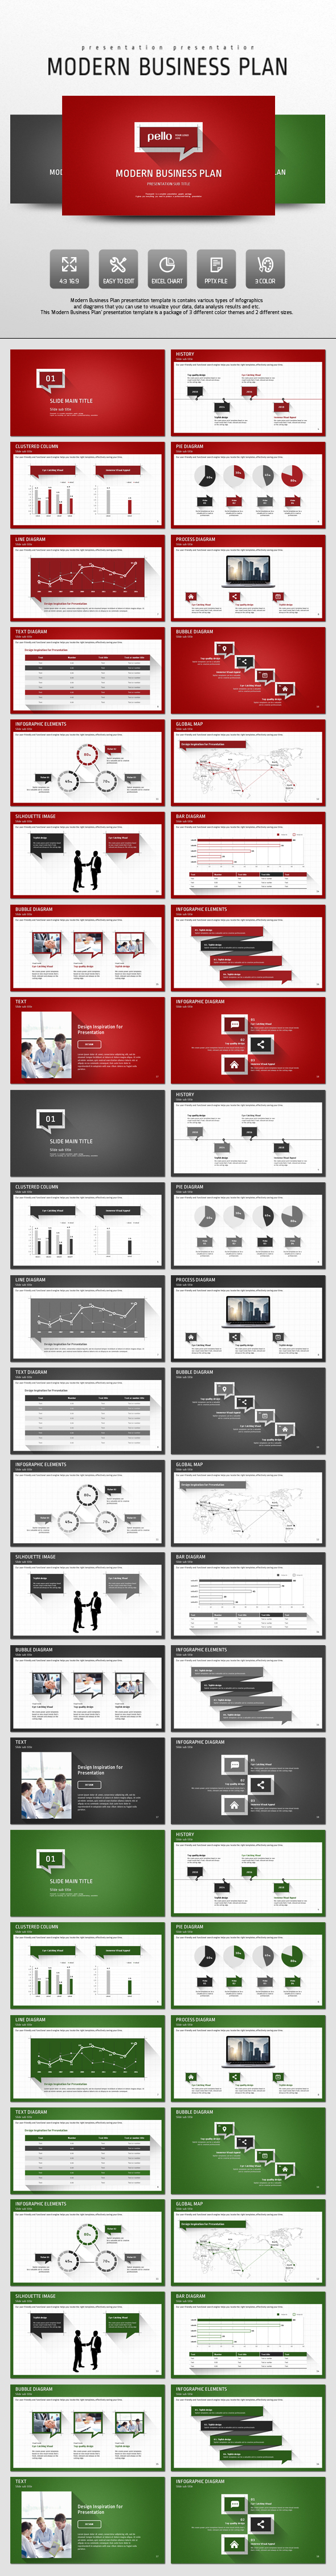 Modern Business Plan - Business PowerPoint Templates